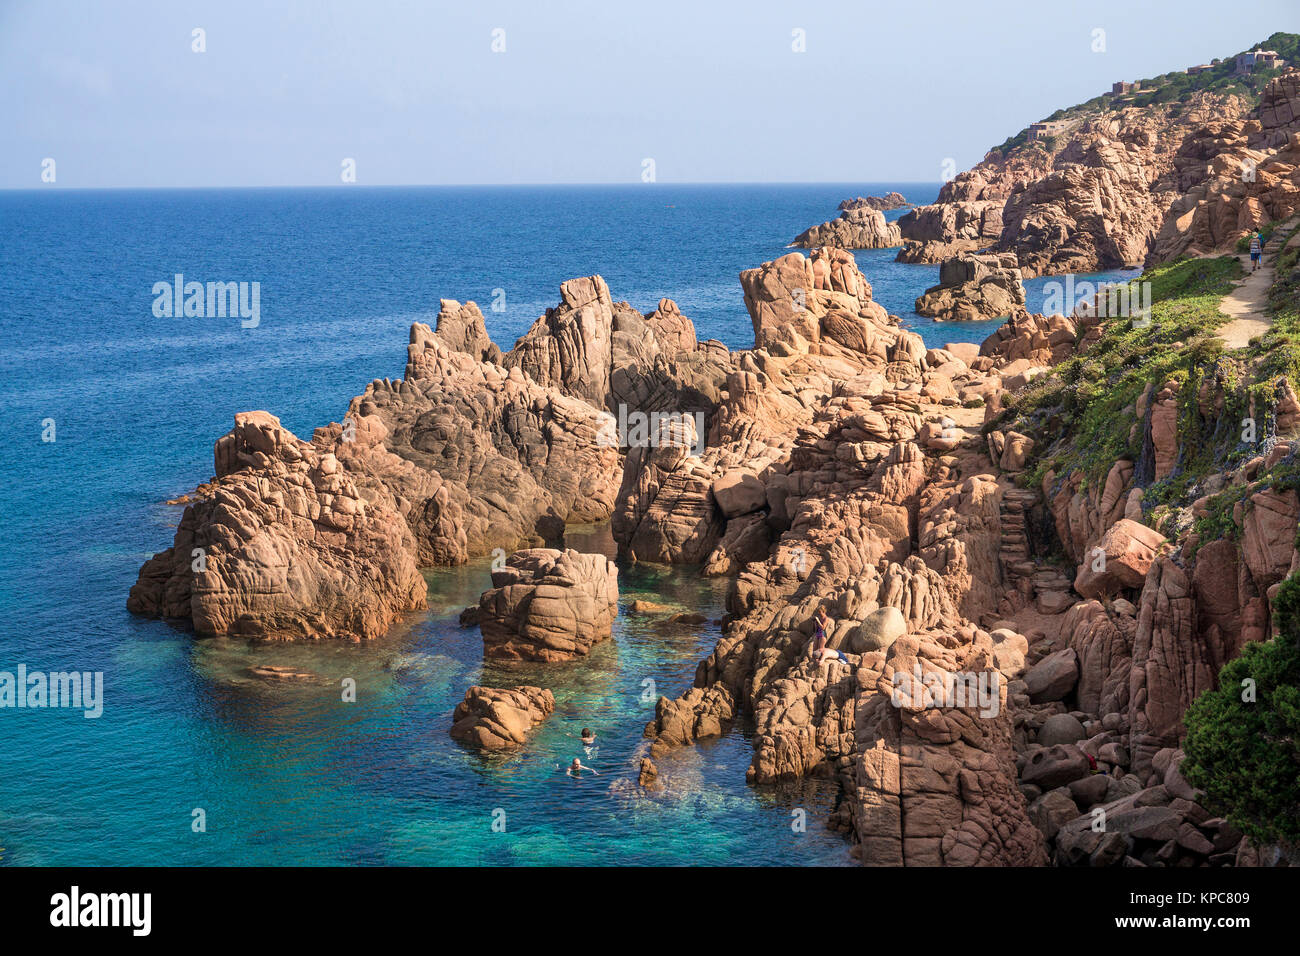 Bathing beach at the rocky coast of Costa Paradiso, Porphyry rocks, Sardinia, Italy, Mediterranean  sea, Europe - Stock Image